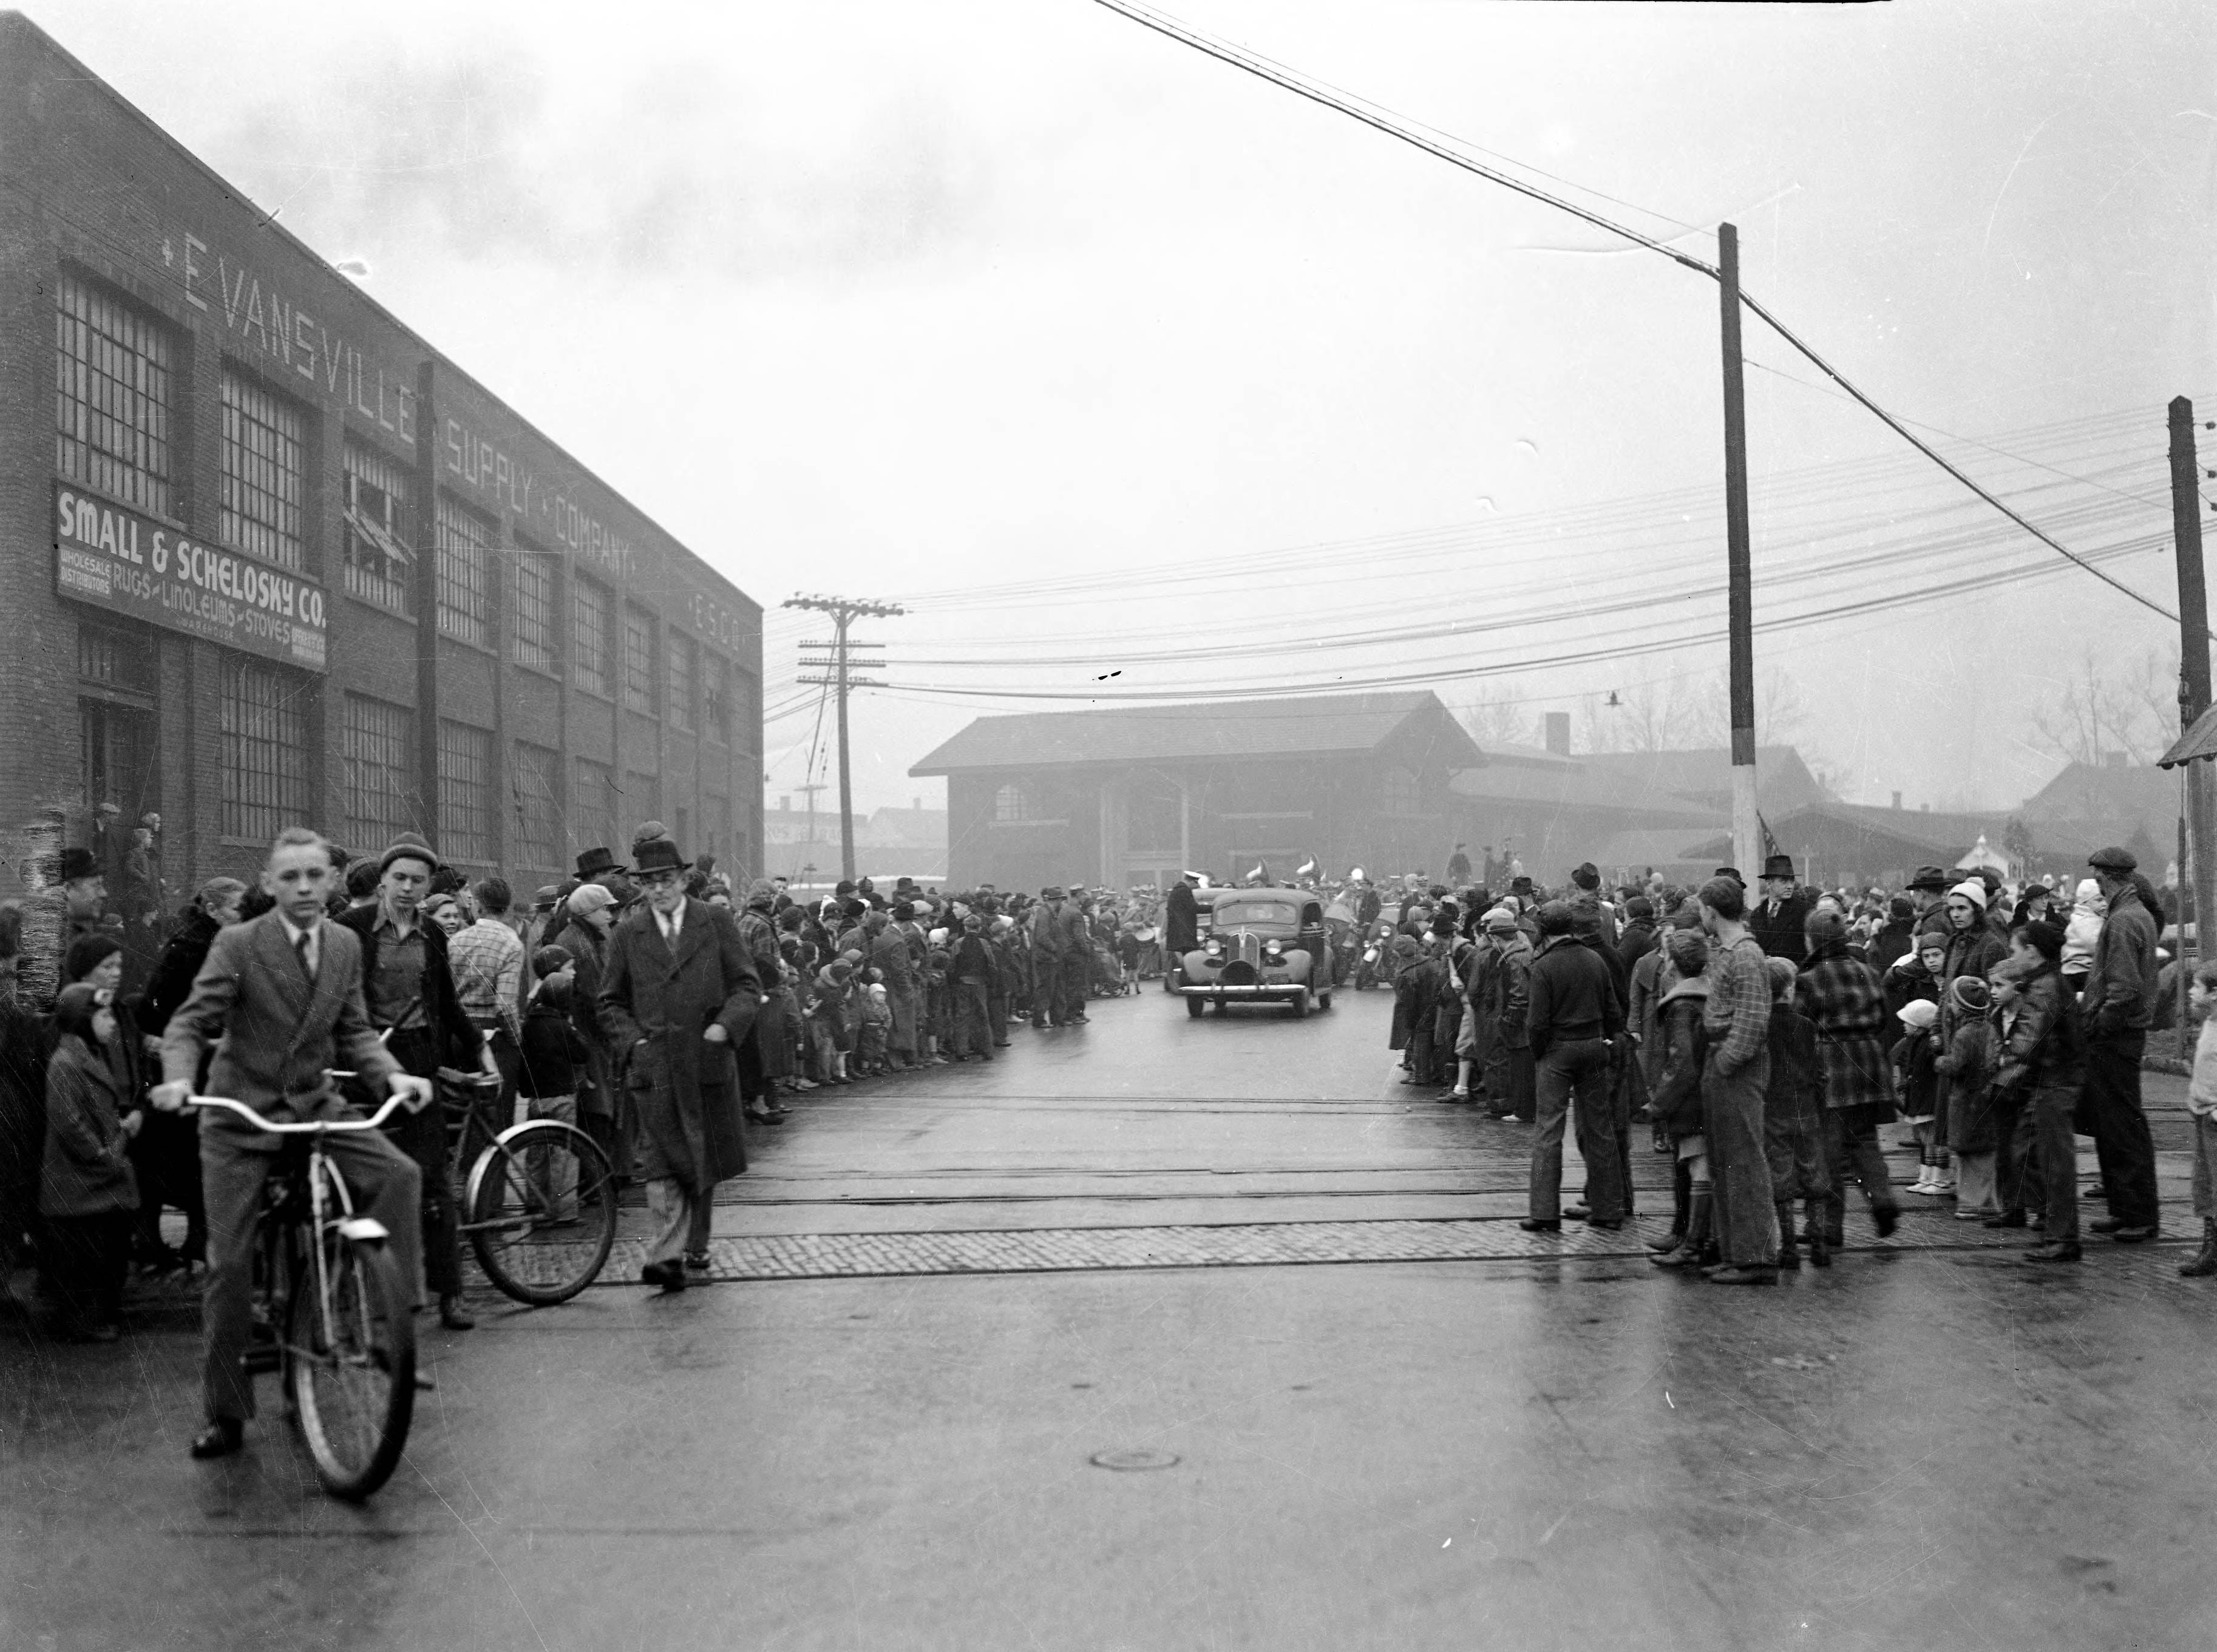 Crowds awaiting WPA Christmas Parade, standing in front of Evansville Supply Co. at 800-14 Pennsylvania St.  This appears to be the beginning of the parade, with lead car, motorcycles, and a band in the mid-background in 1939.